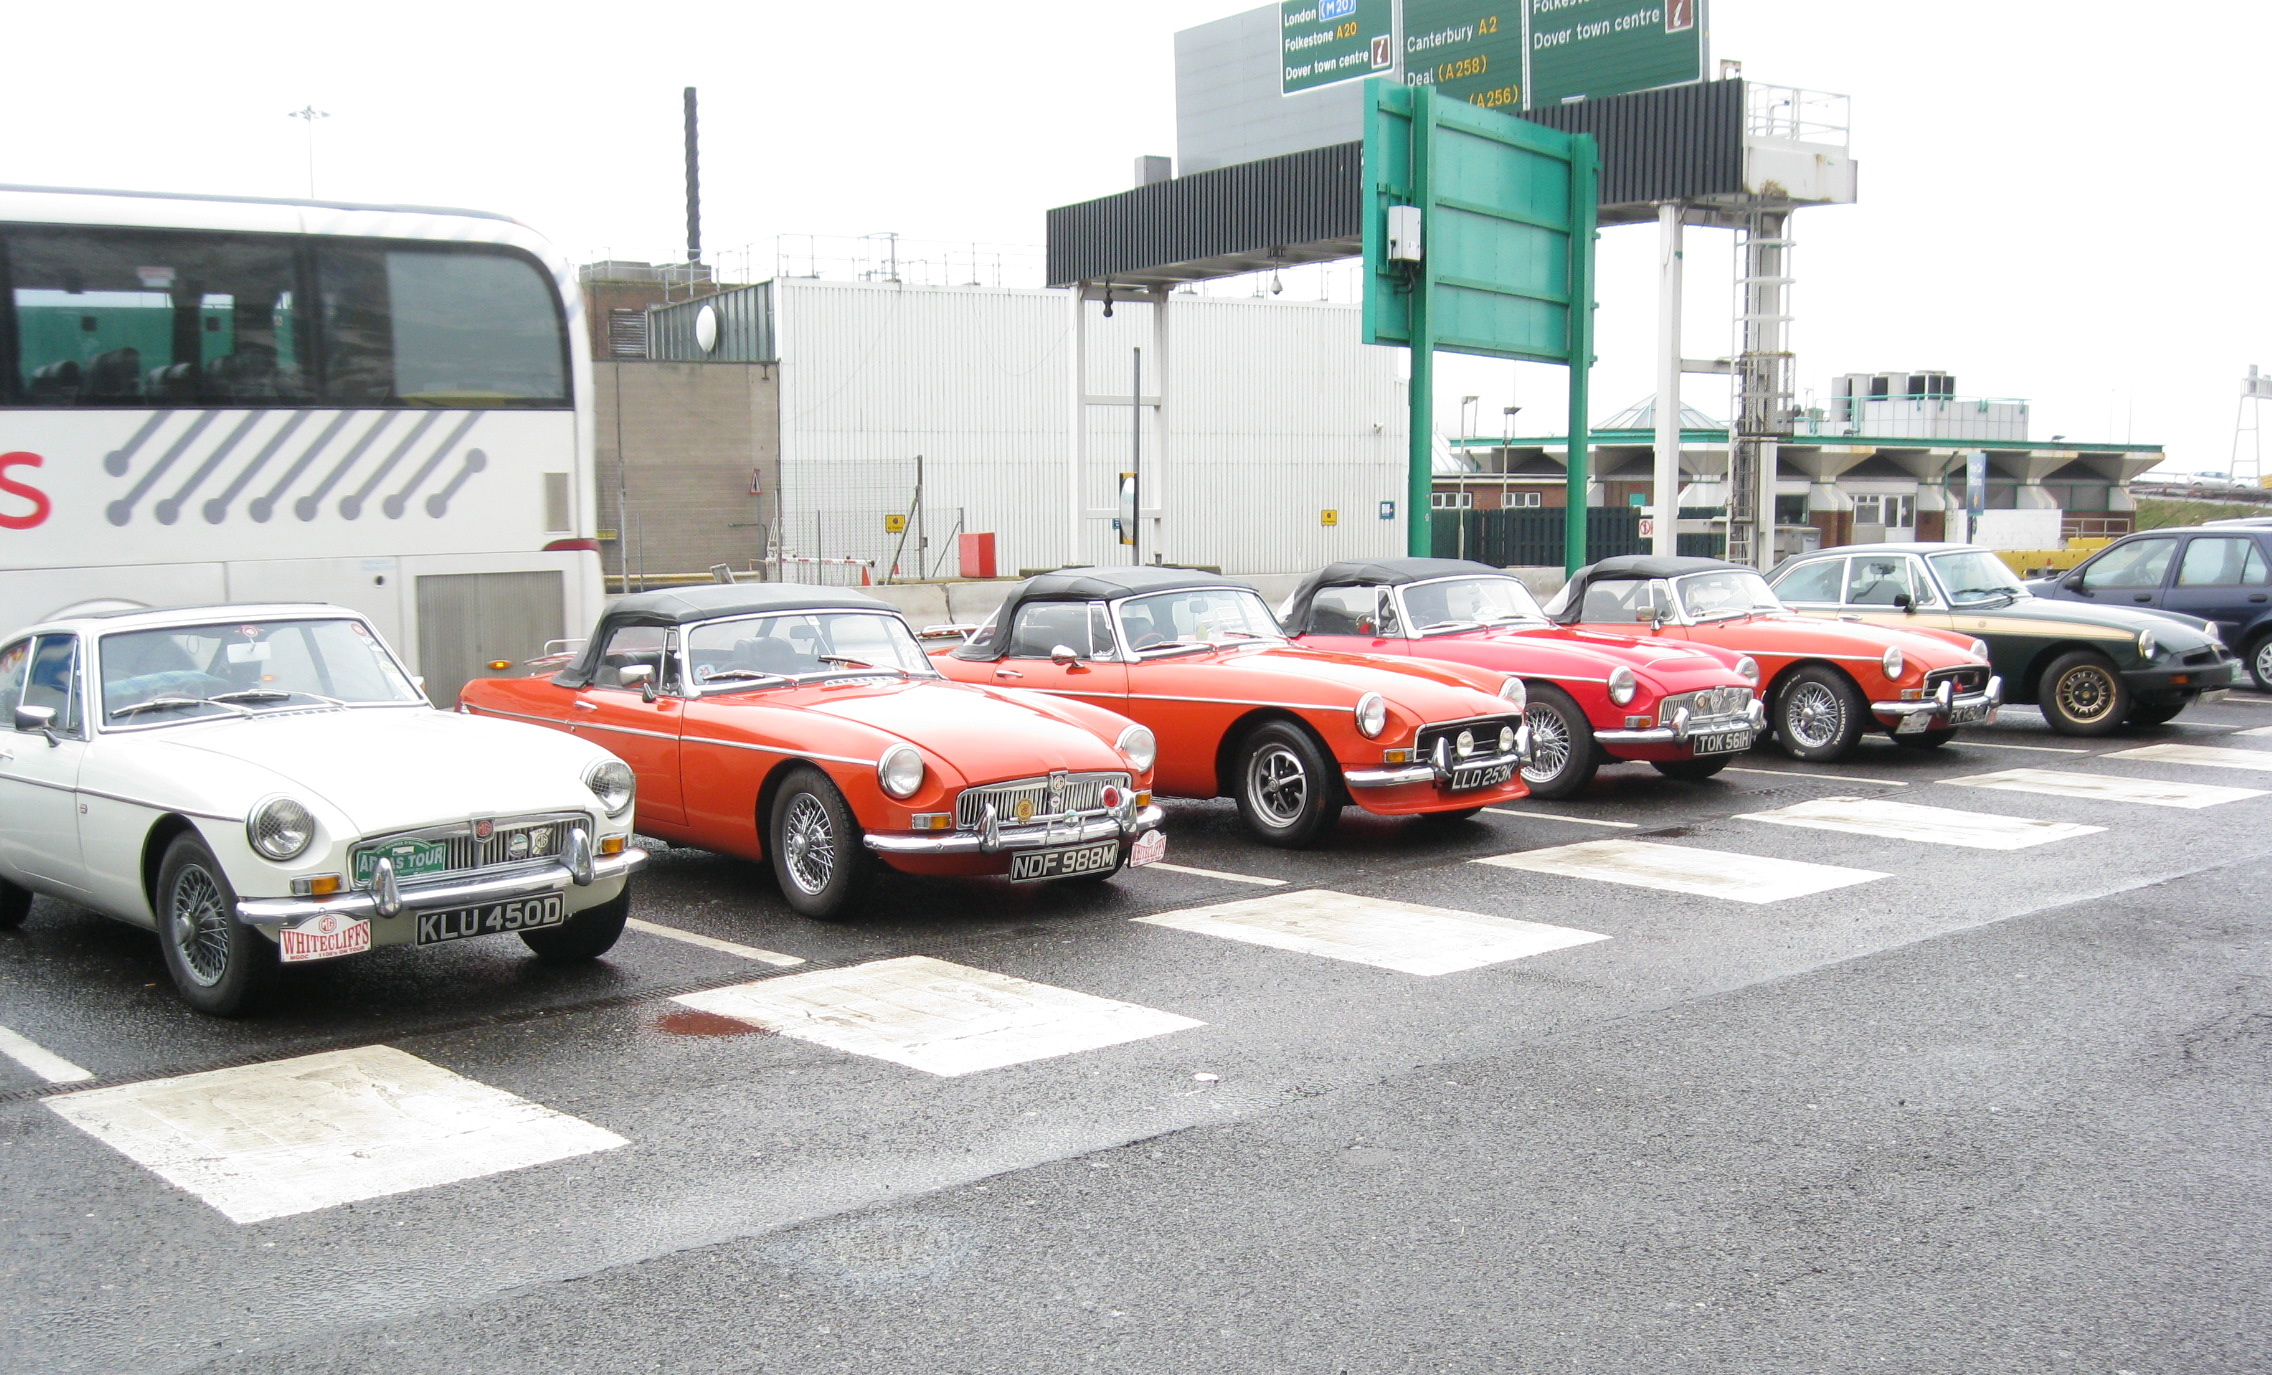 MG's lined up at Dover Docks